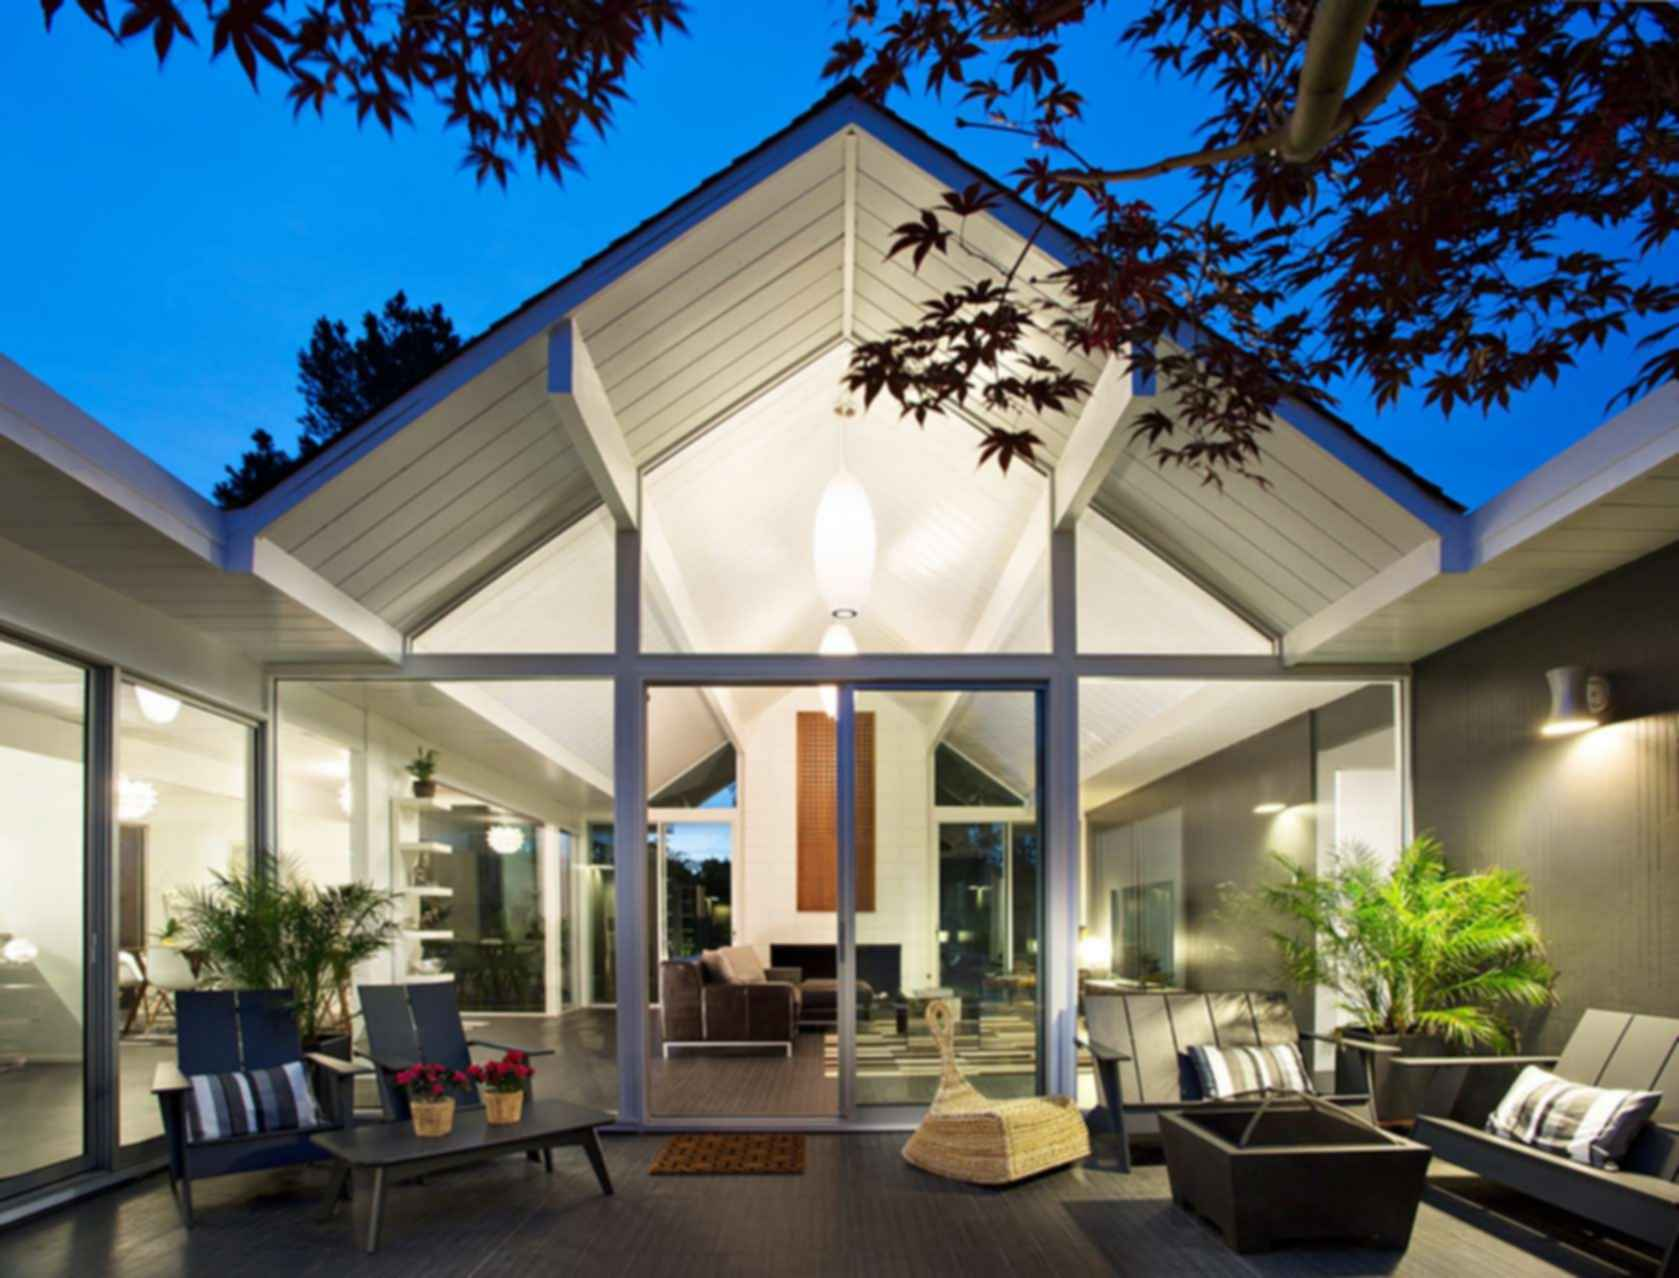 Double Gable Eichler Remodel - Outdoor Area